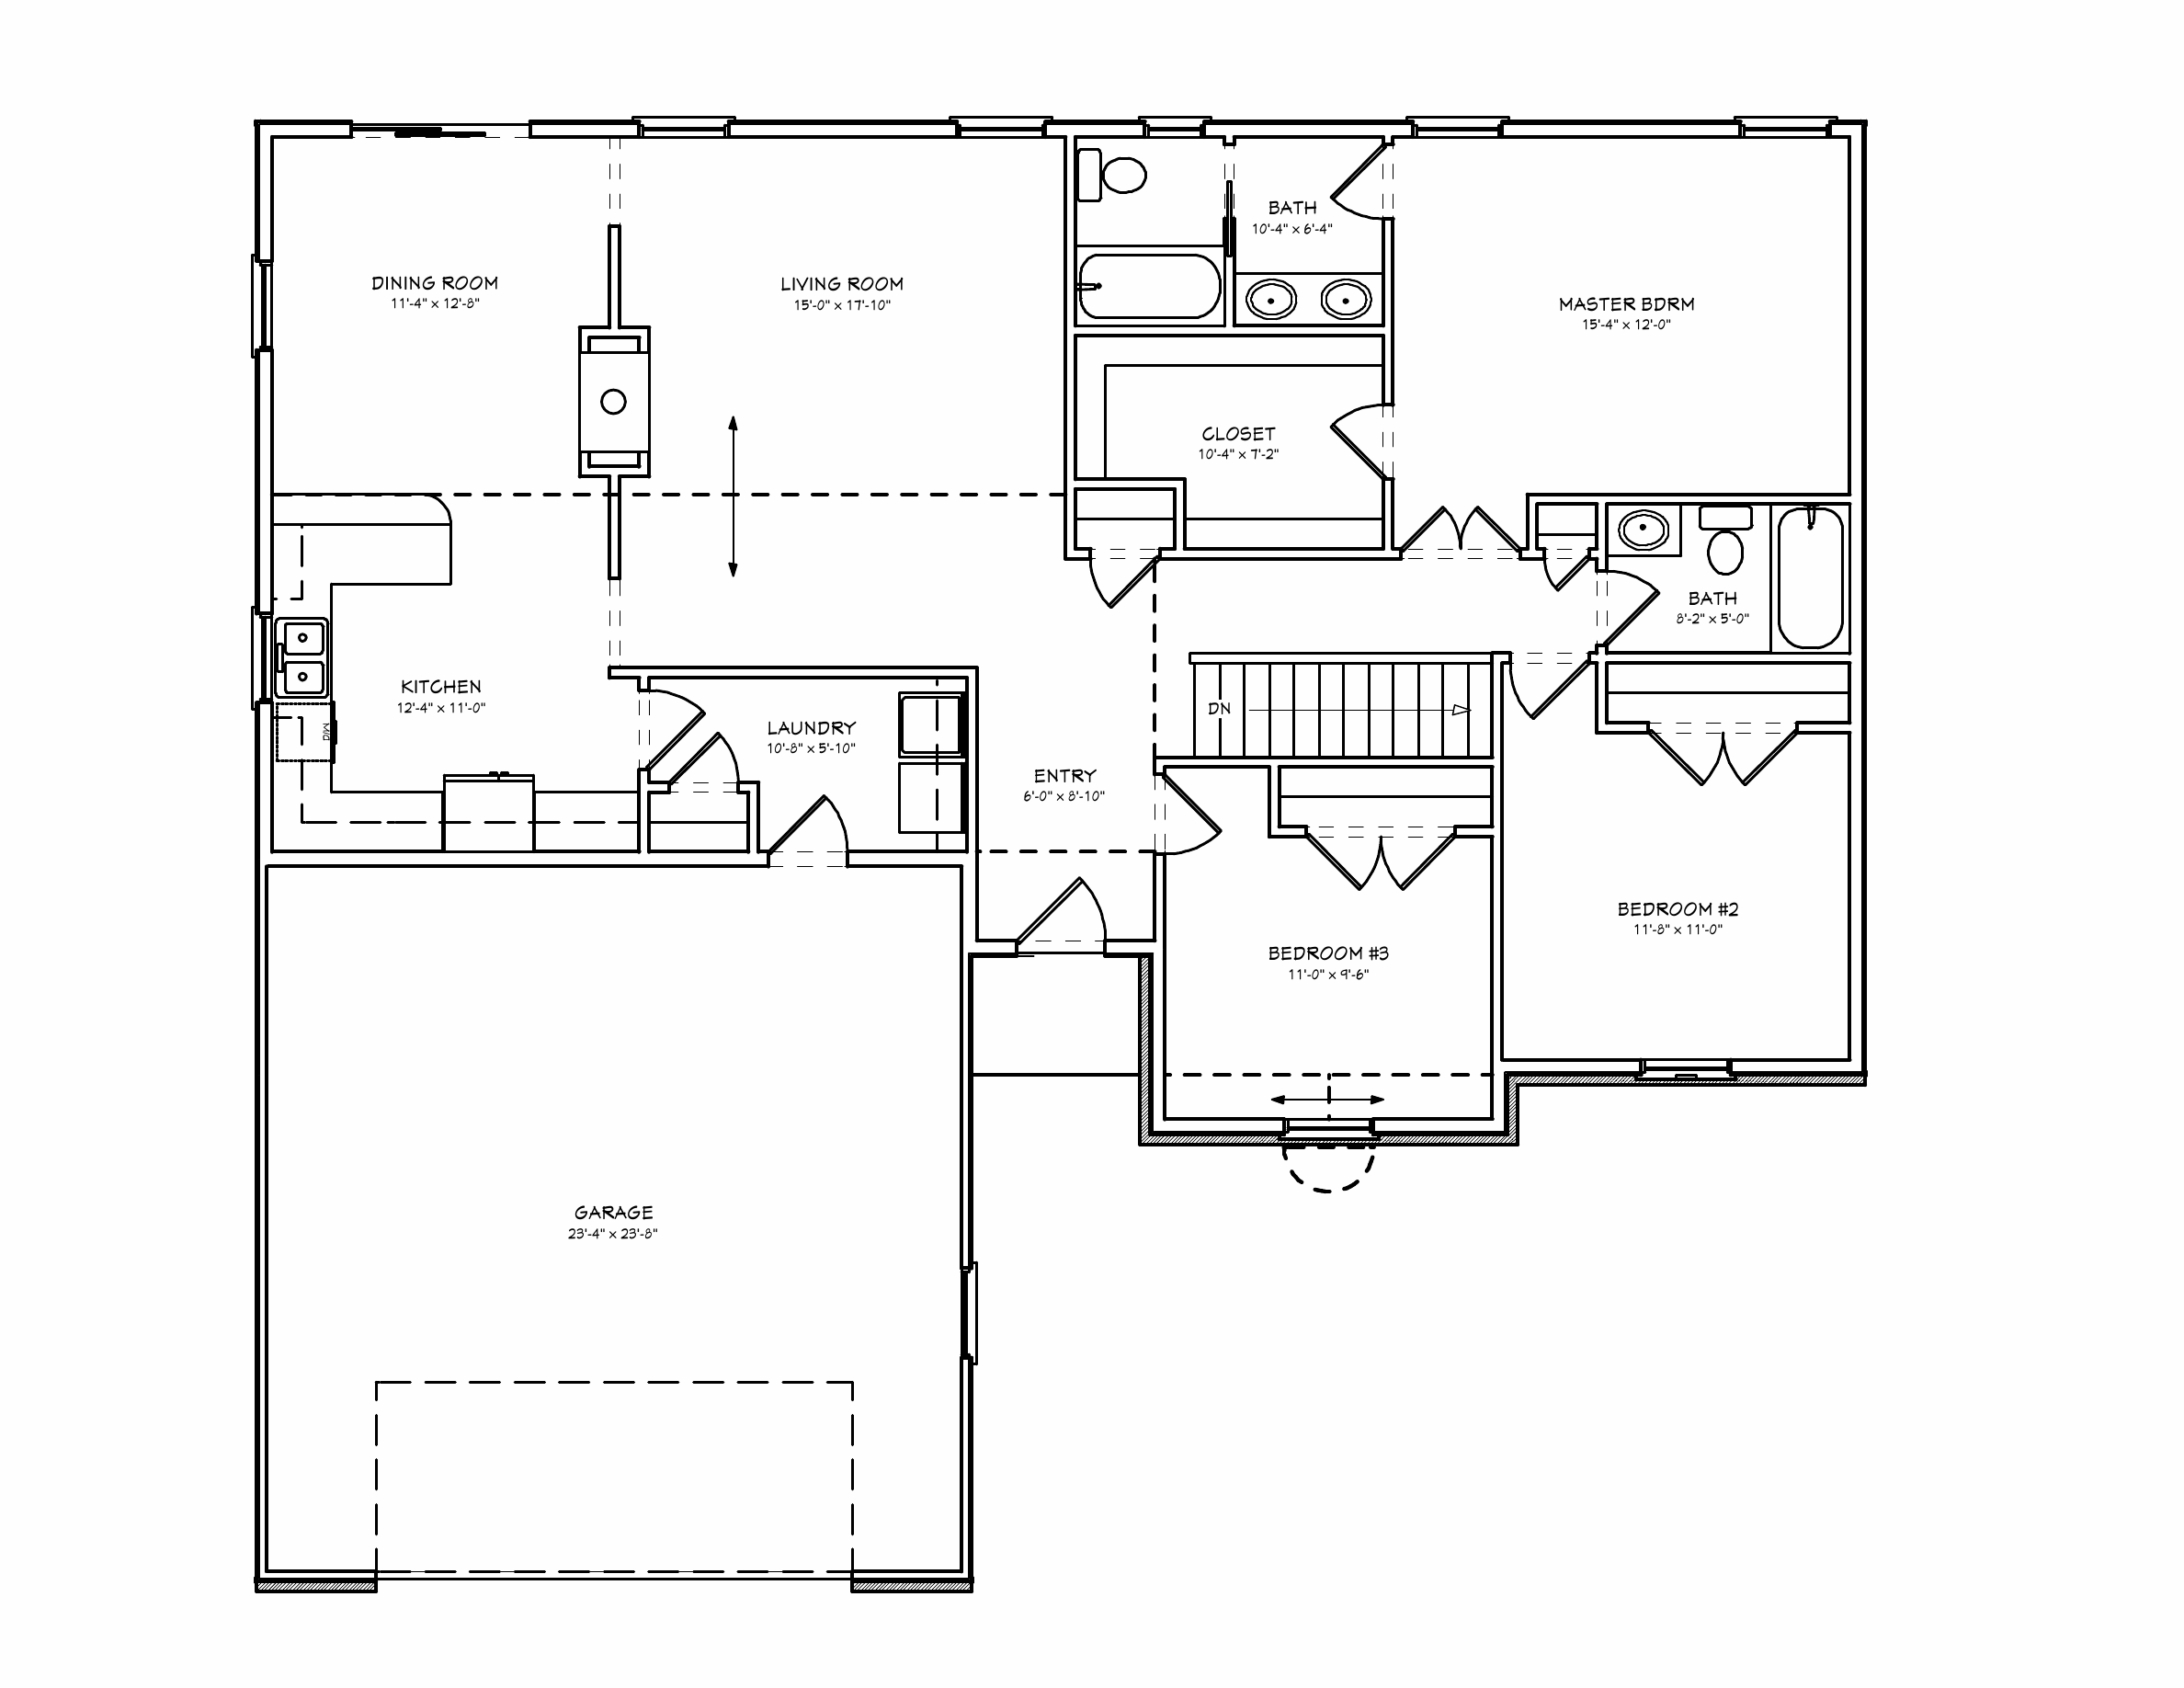 1000 Images About House Floor Plans On Pinterest Small House Floor Plans Floor Plans And House